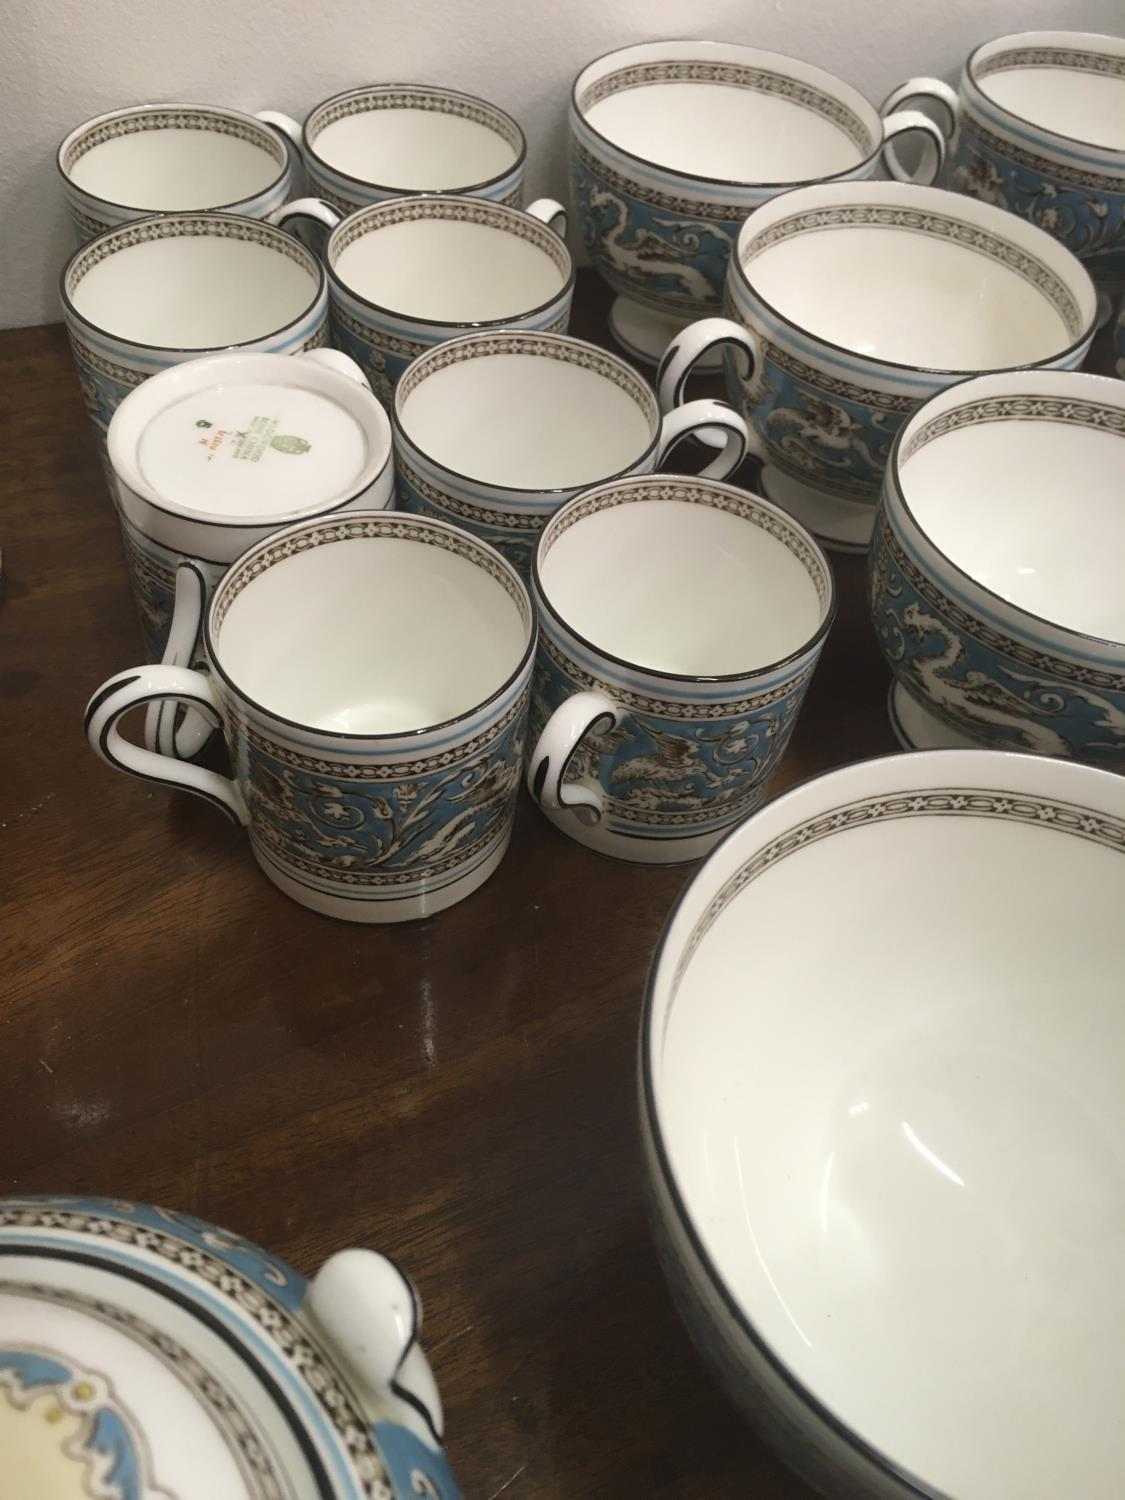 Wedgwood Classical Tea and Coffee set 8 place setting includes, coffee pot, tea pot, cream and - Image 7 of 7